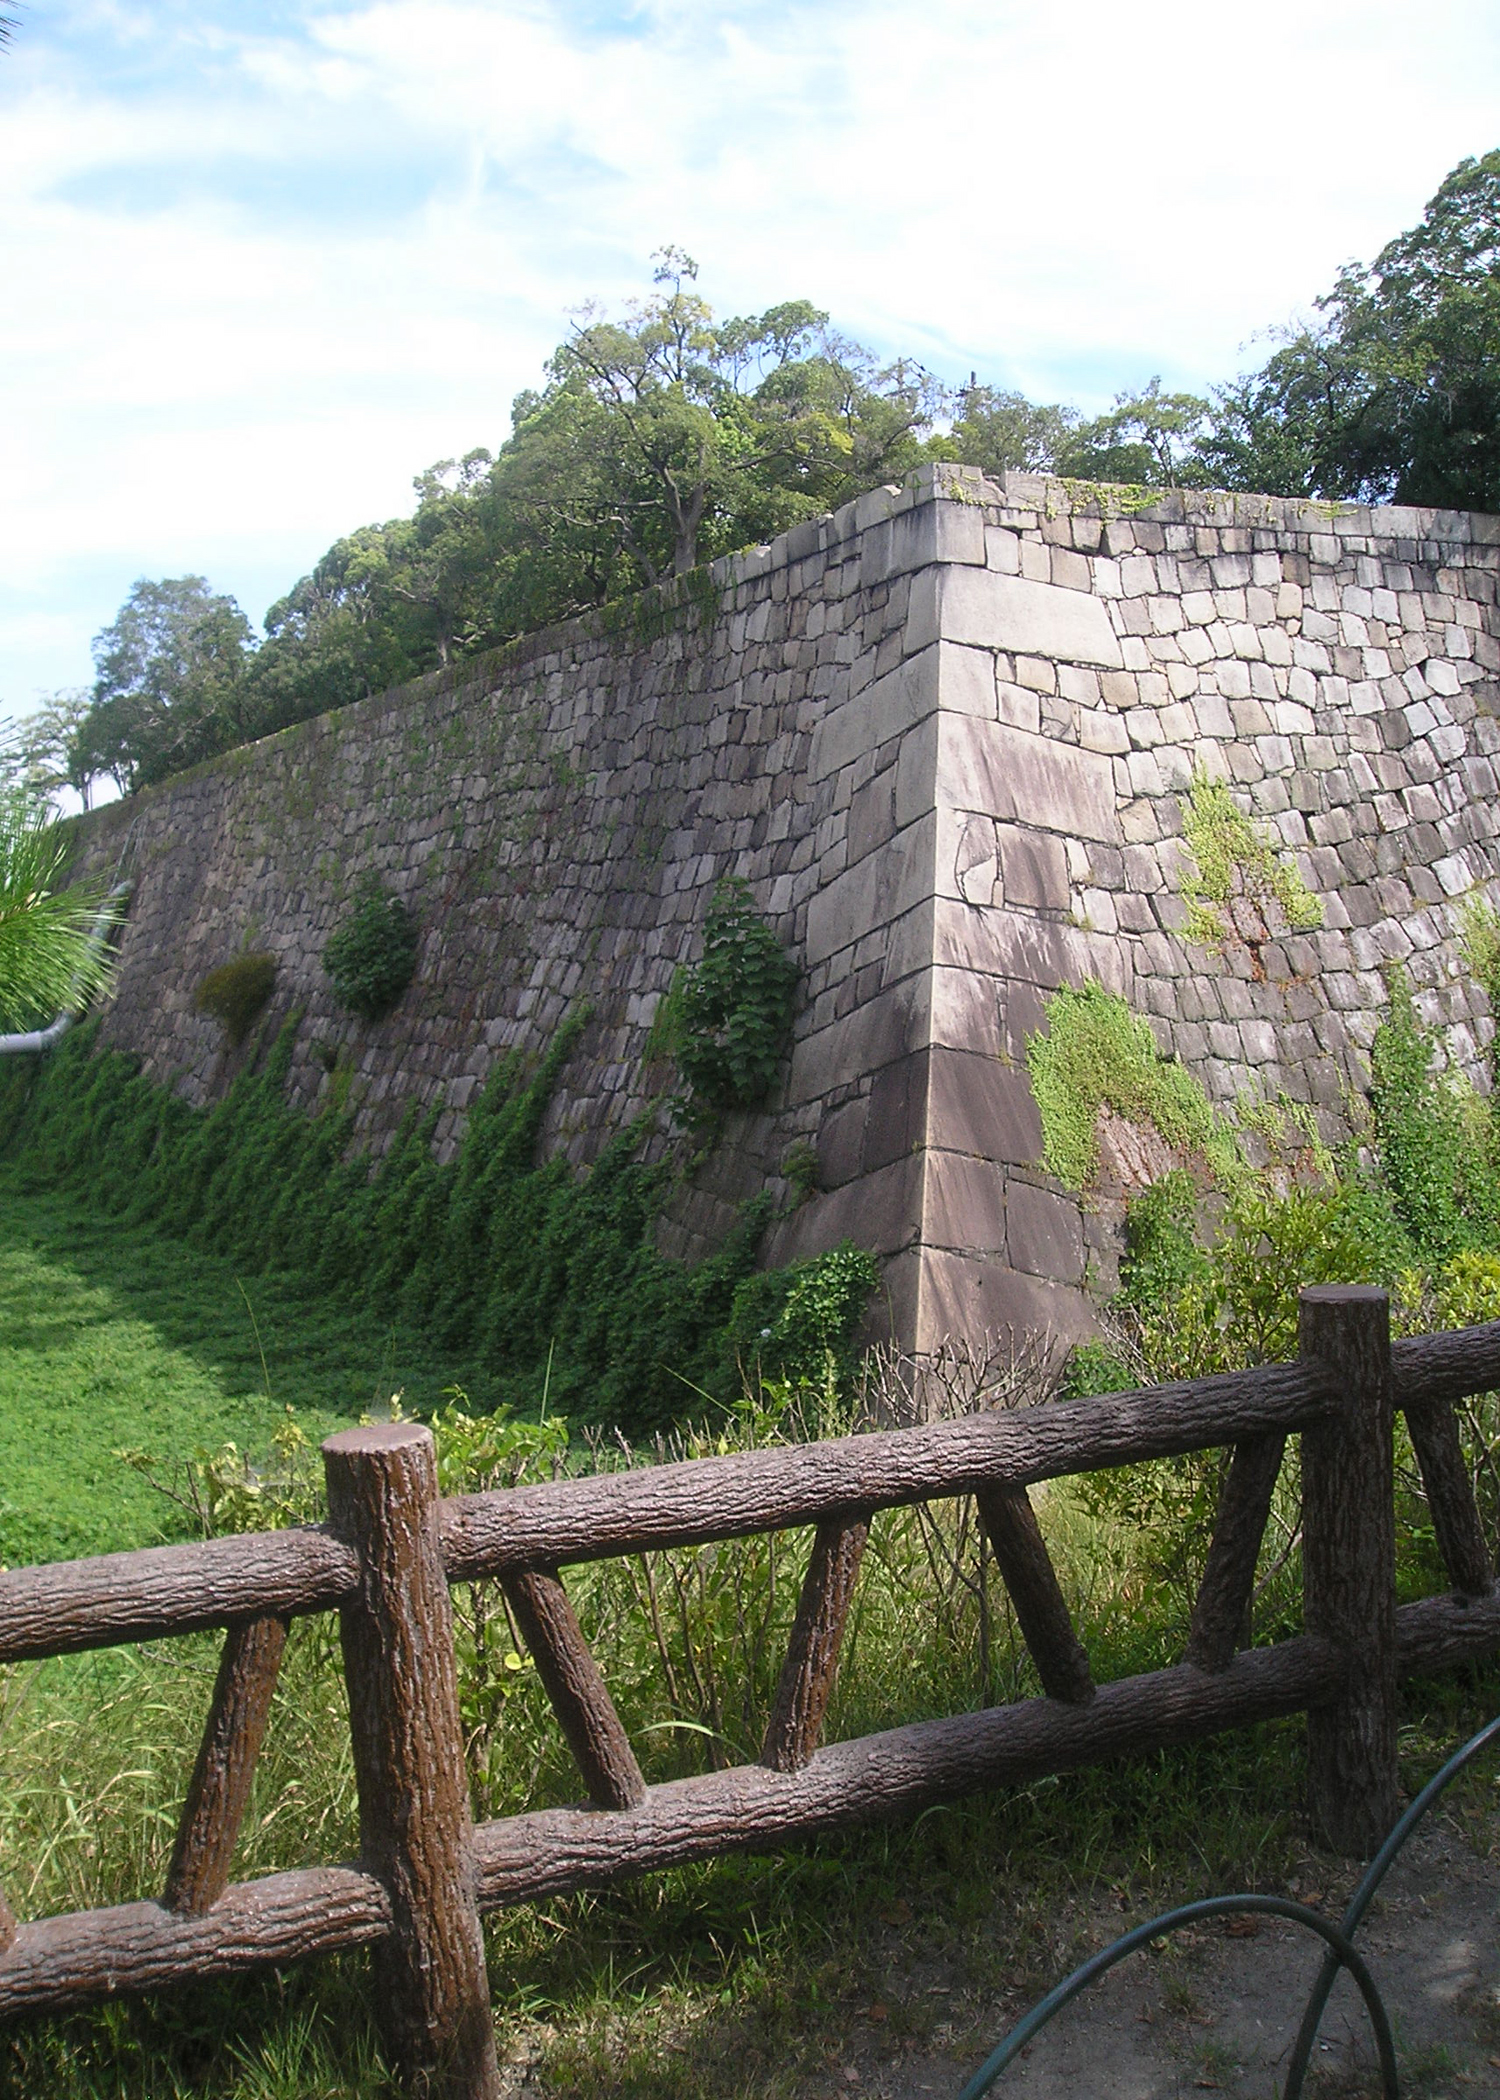 Massive Stone Wall and Dry Moat at Osaka Castle